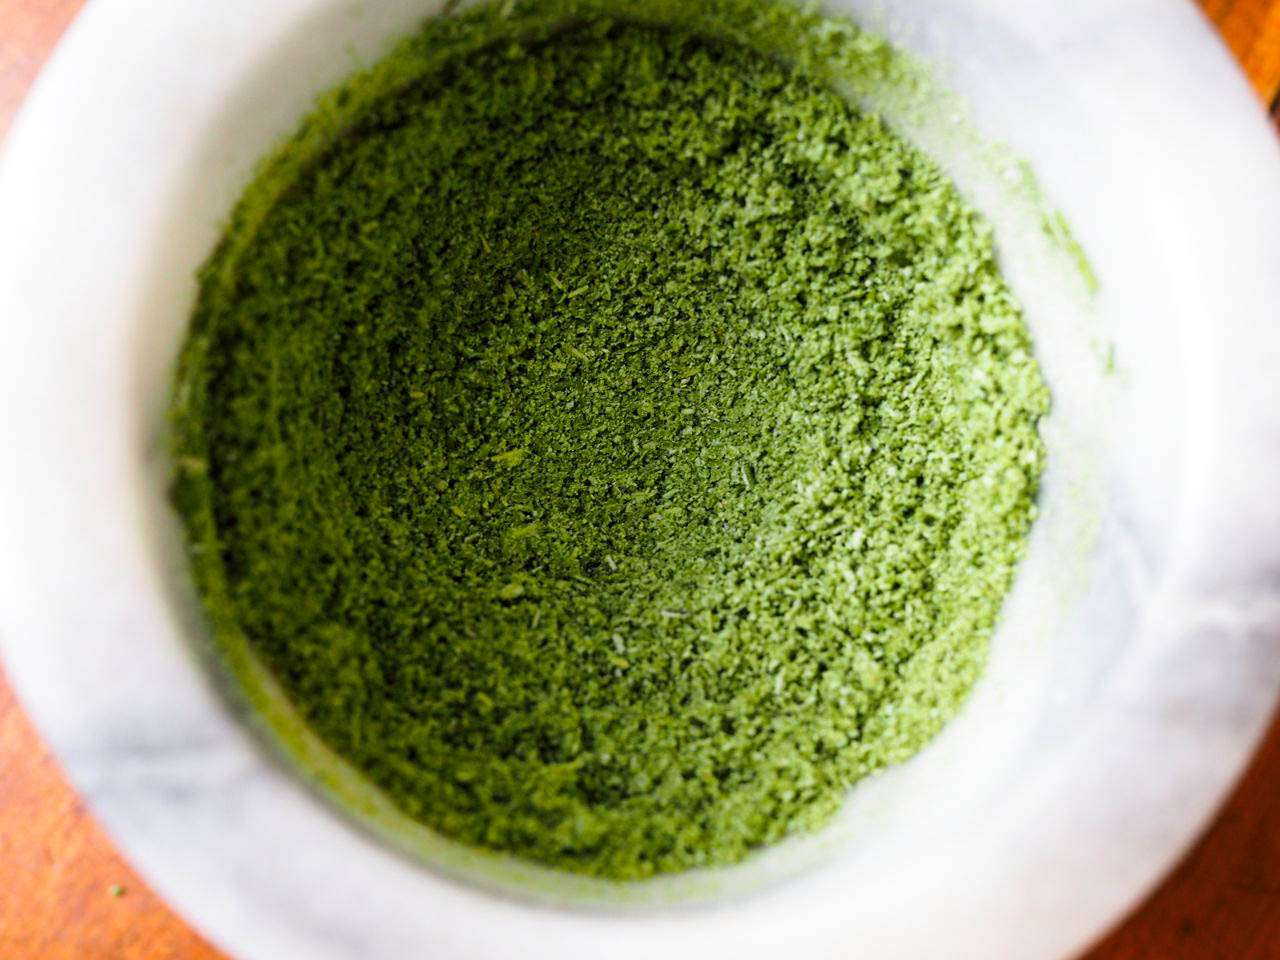 Rosemary leaves that have been dried in the microwave and ground into a bright green powder with a mortar and pestle.